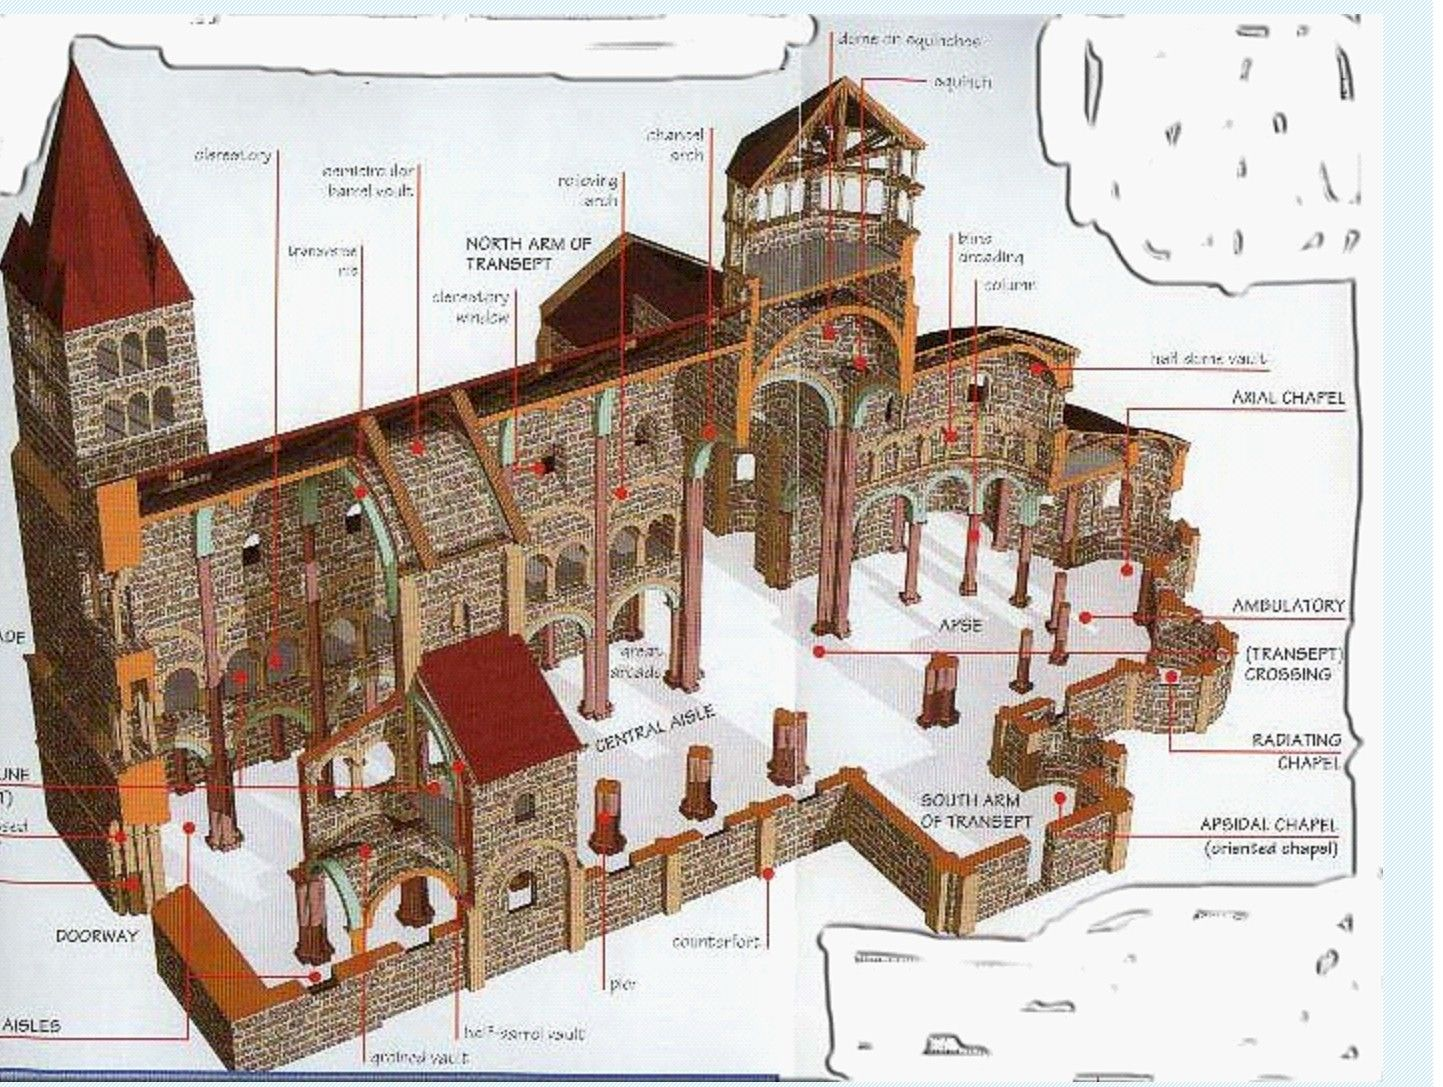 Middle ages and church